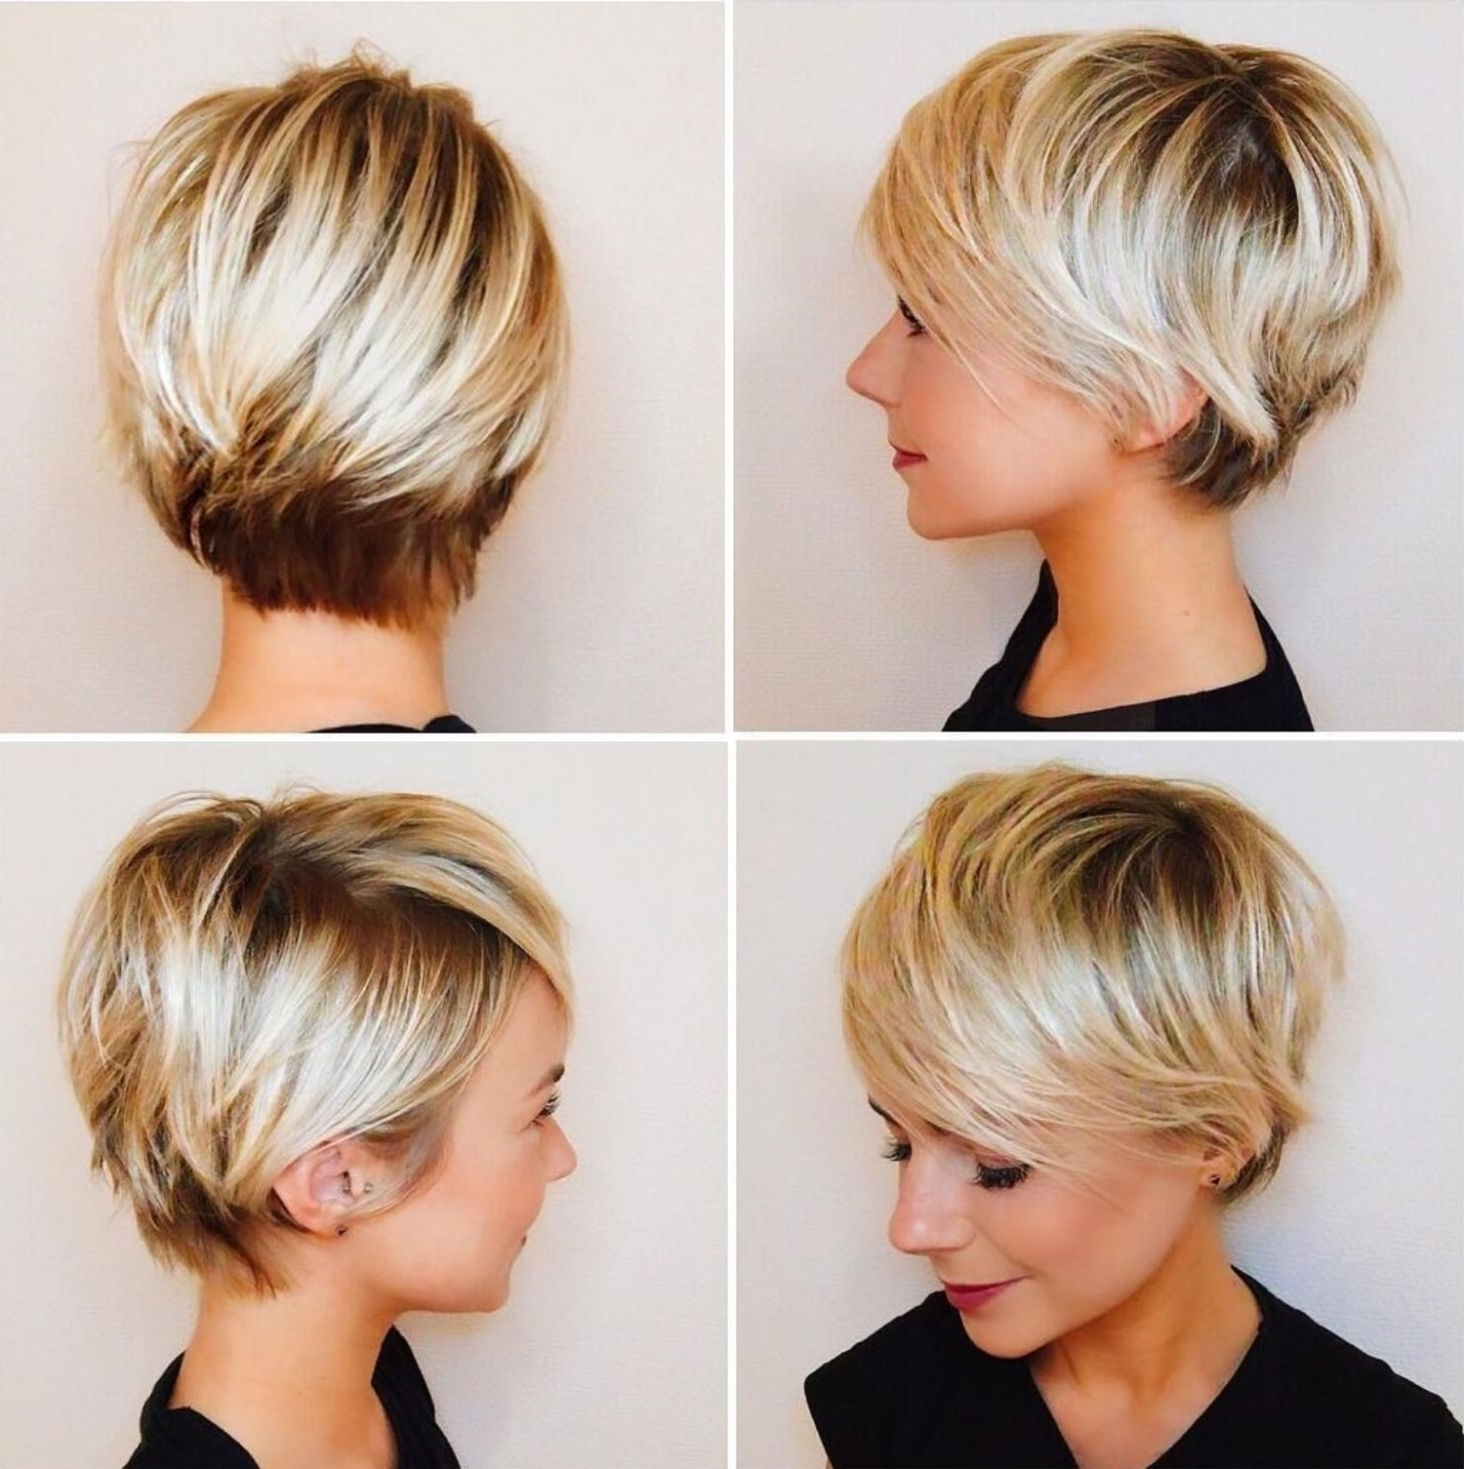 Pixie Haircuts With Bangs – 50 Terrific Tapers | Hiukset | Pinterest For Most Current Tapered Pixie With Maximum Volume (View 6 of 15)